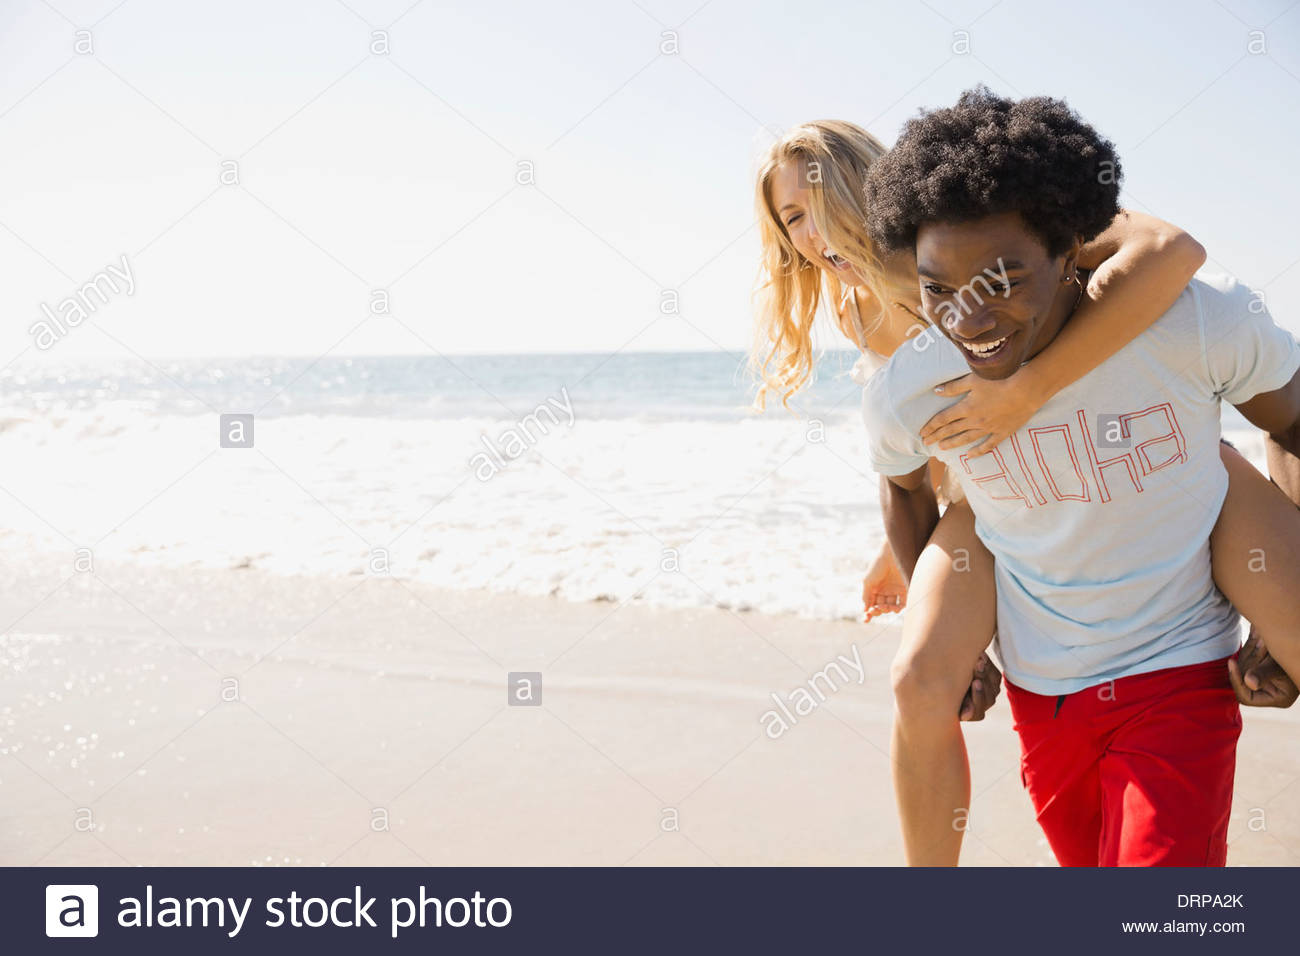 Playful couple on the beach - Stock Image